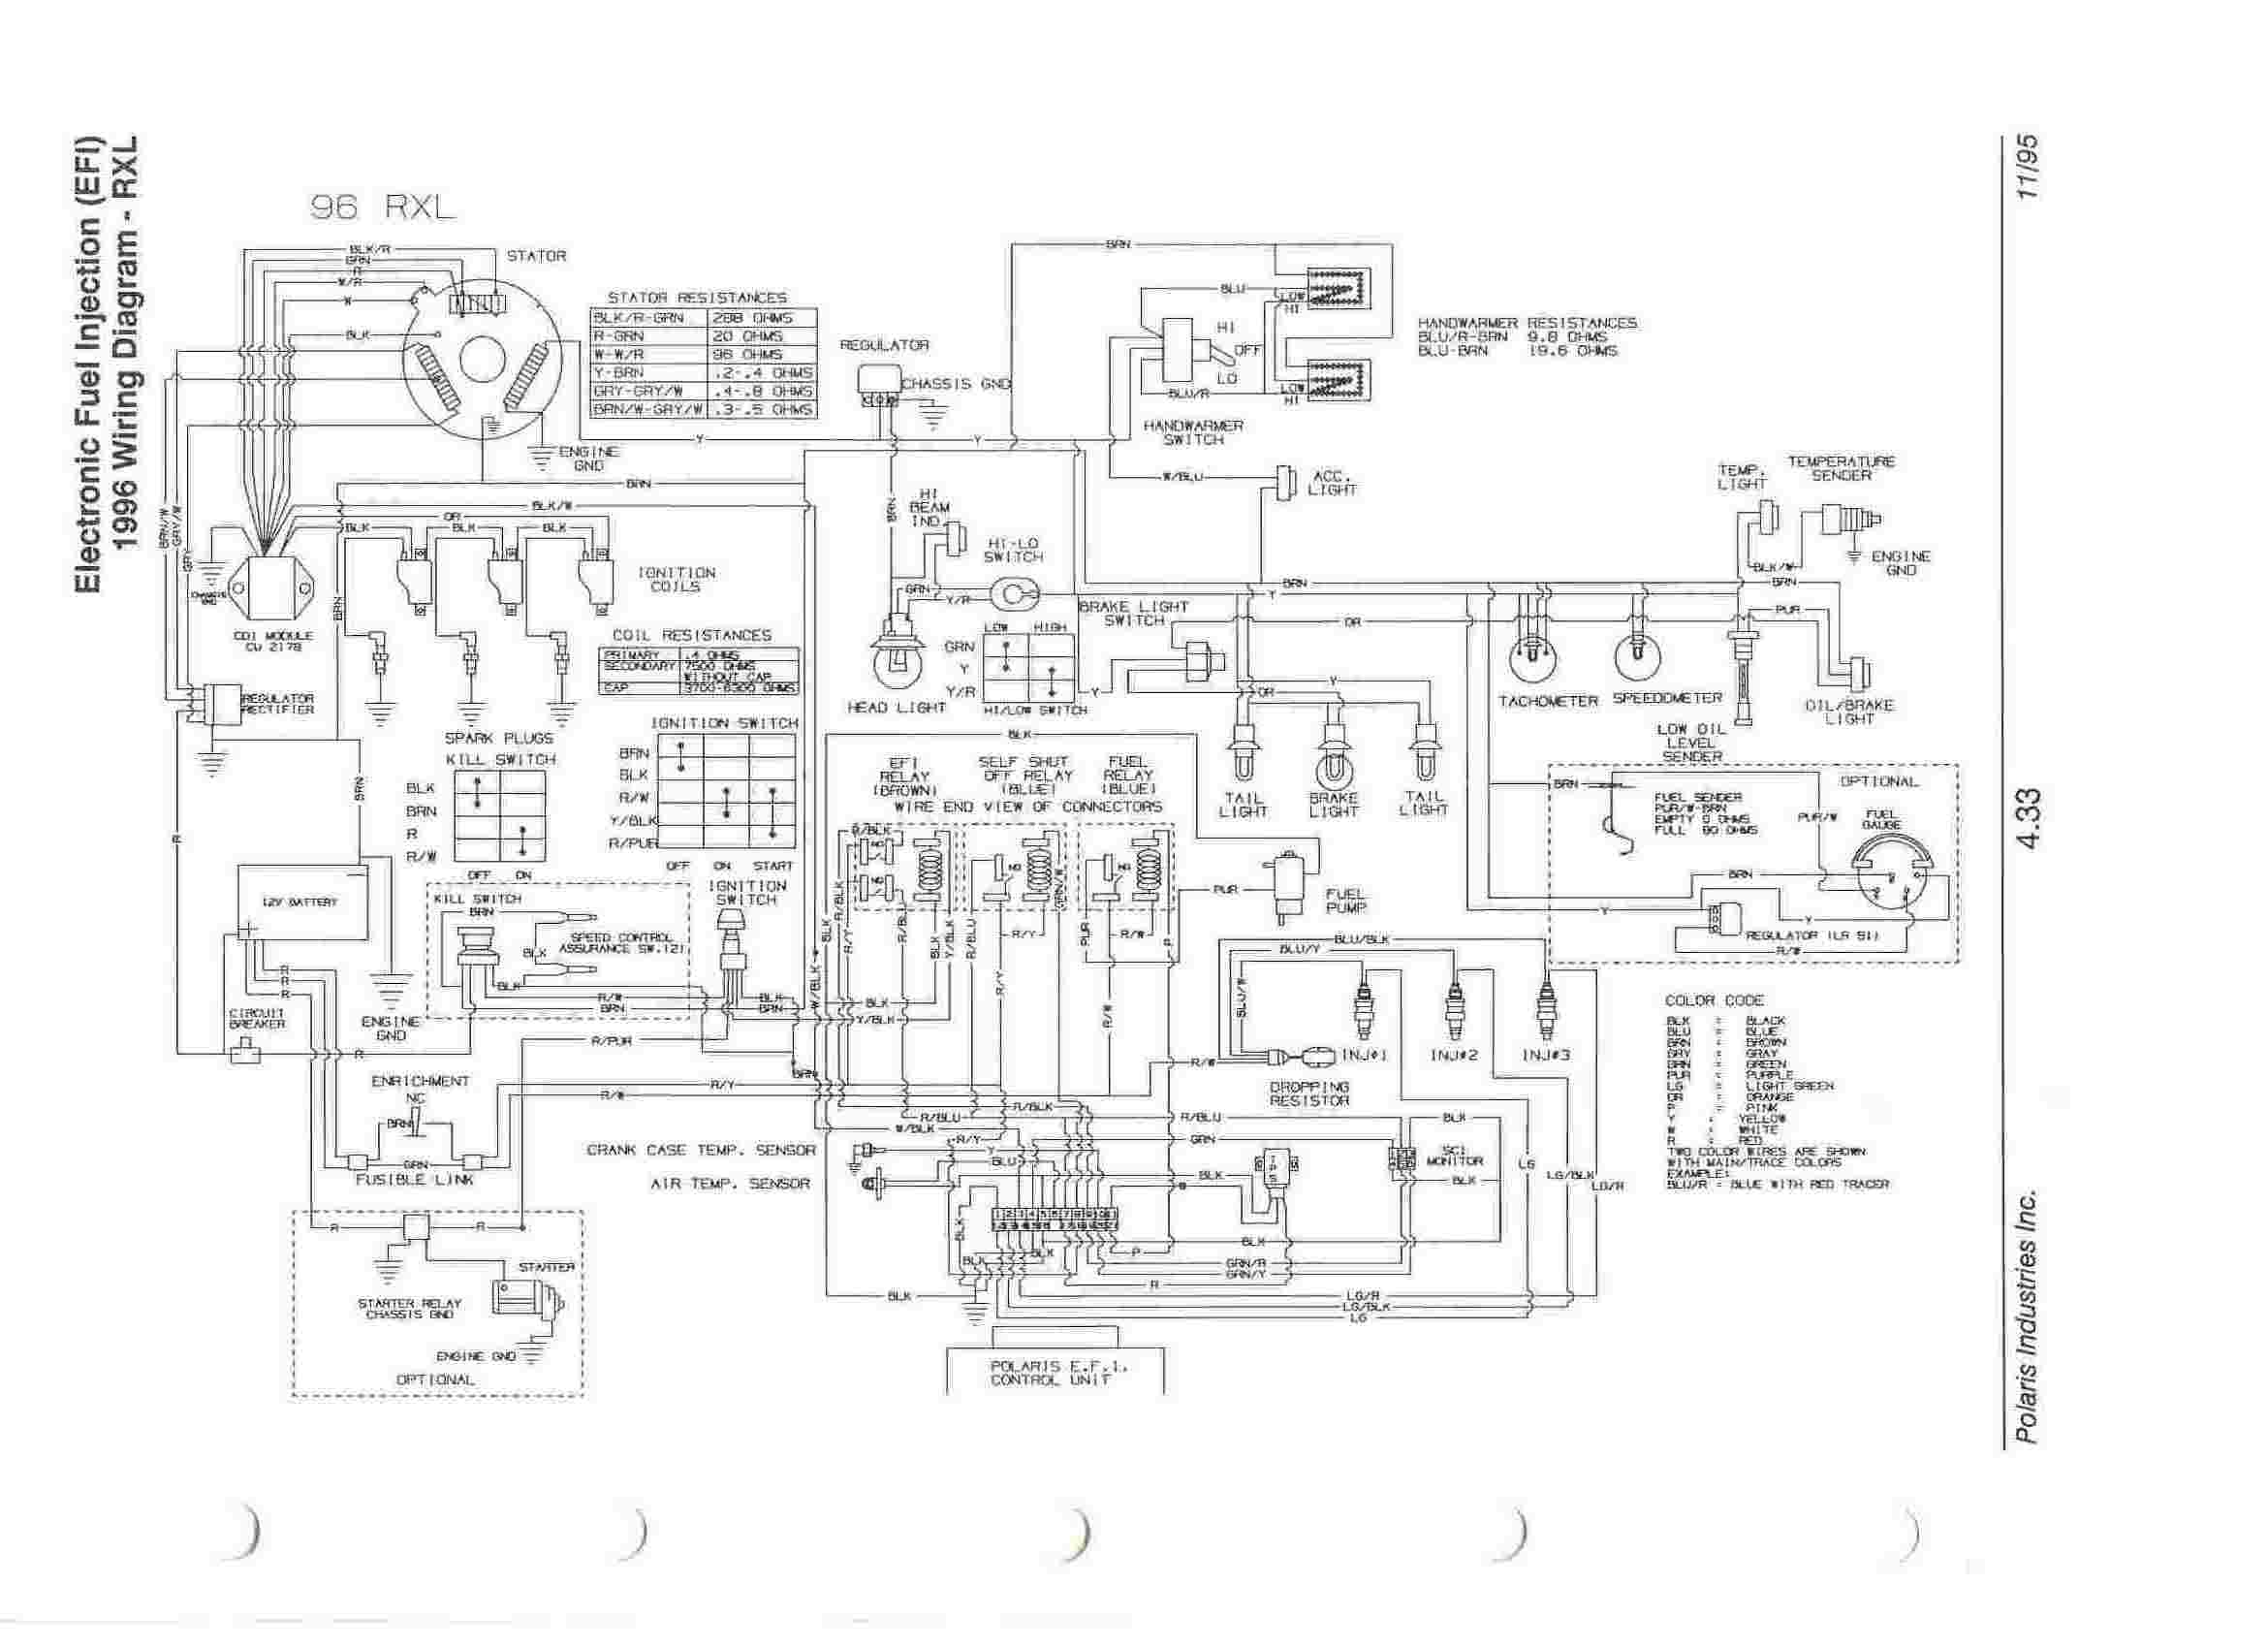 Electronic Fuel Gauge Wiring Diagram Attachment 134121